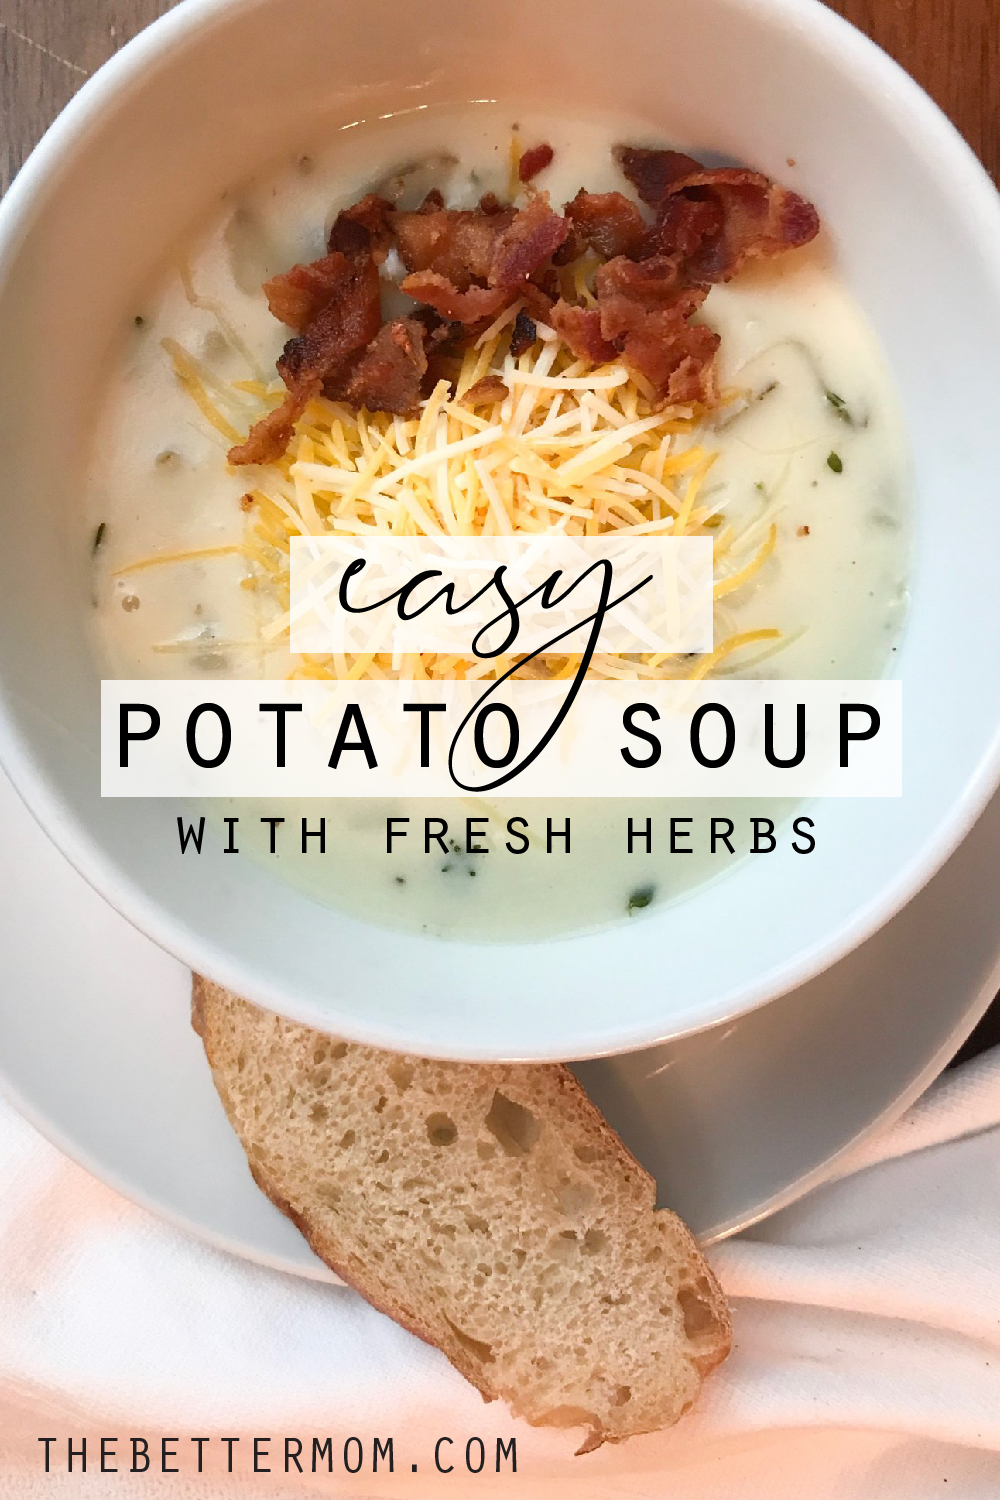 """If you are looking for a """"cozy and comforting"""" meal in this cold winter season, we have the PERFECT idea! This easy and delicious potato soup will warm you right up! Yummy!!"""